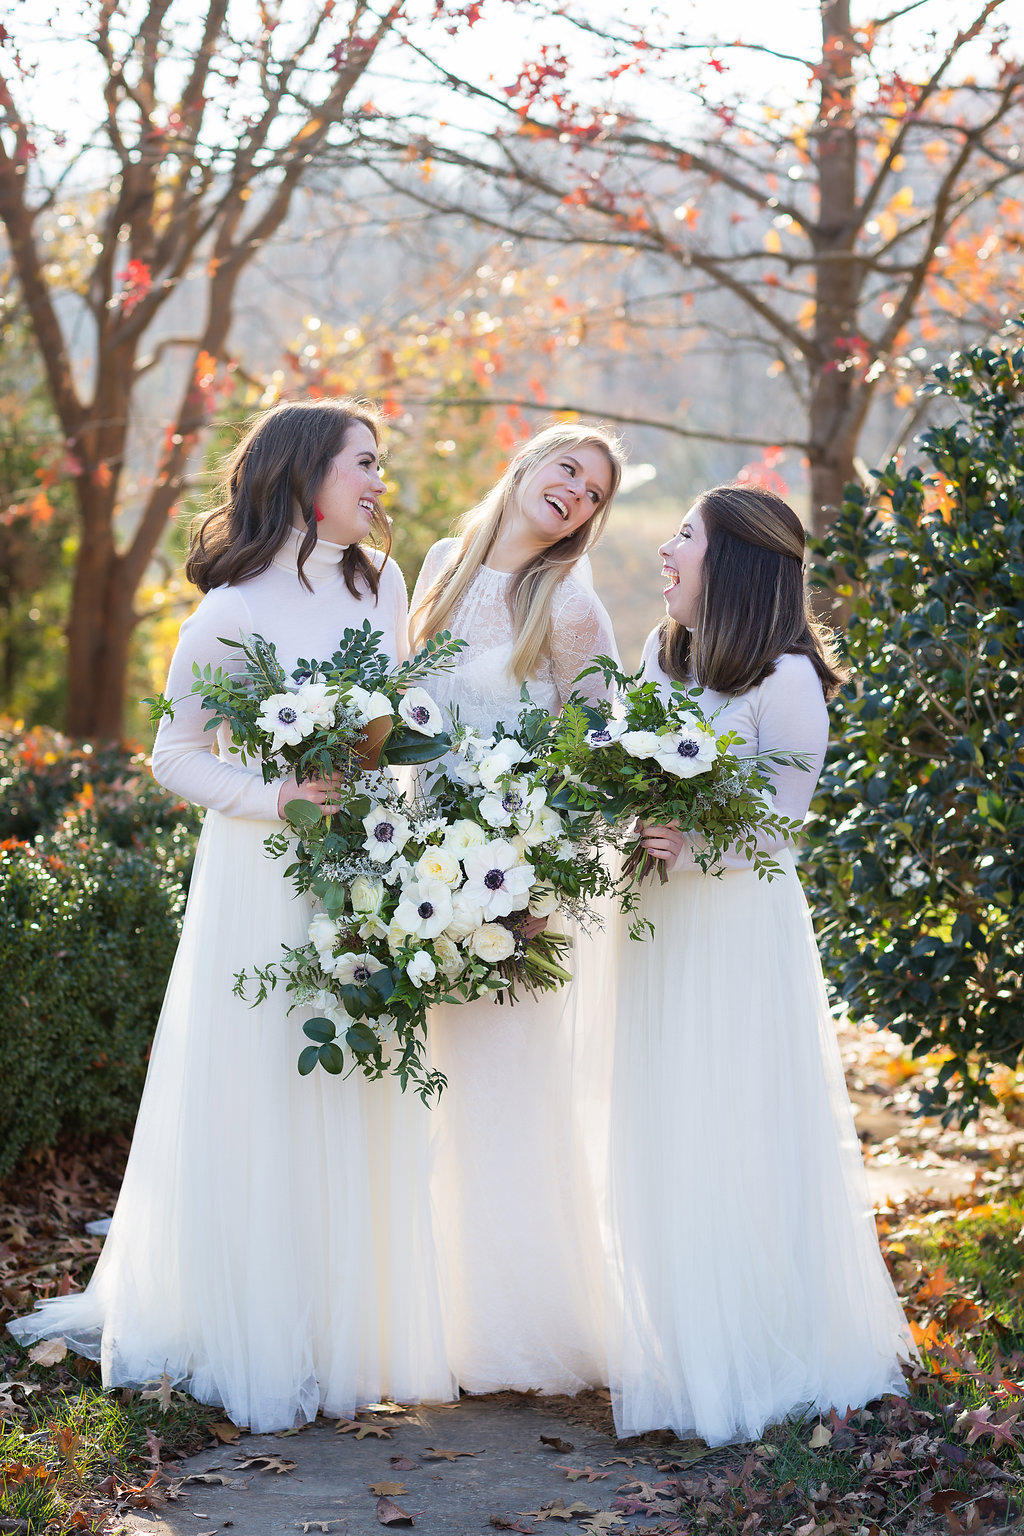 Winter Wedding at Blackberry Farm with all white and greenery florals // Southern Floral Design